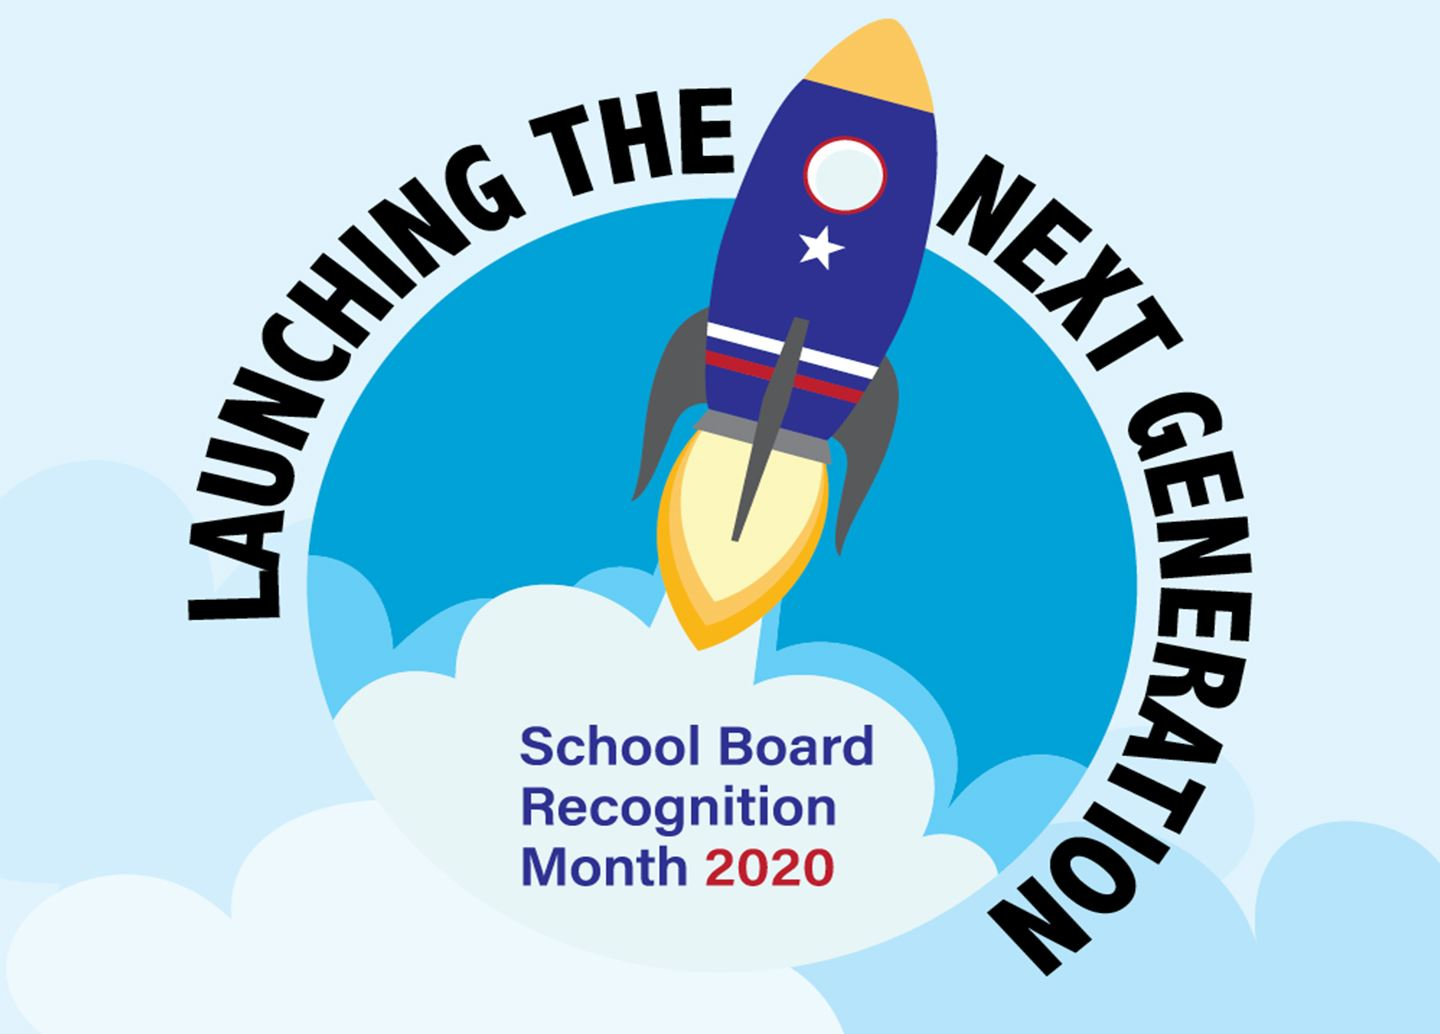 School Board Recognition Month 2020: Launching the Next Generation